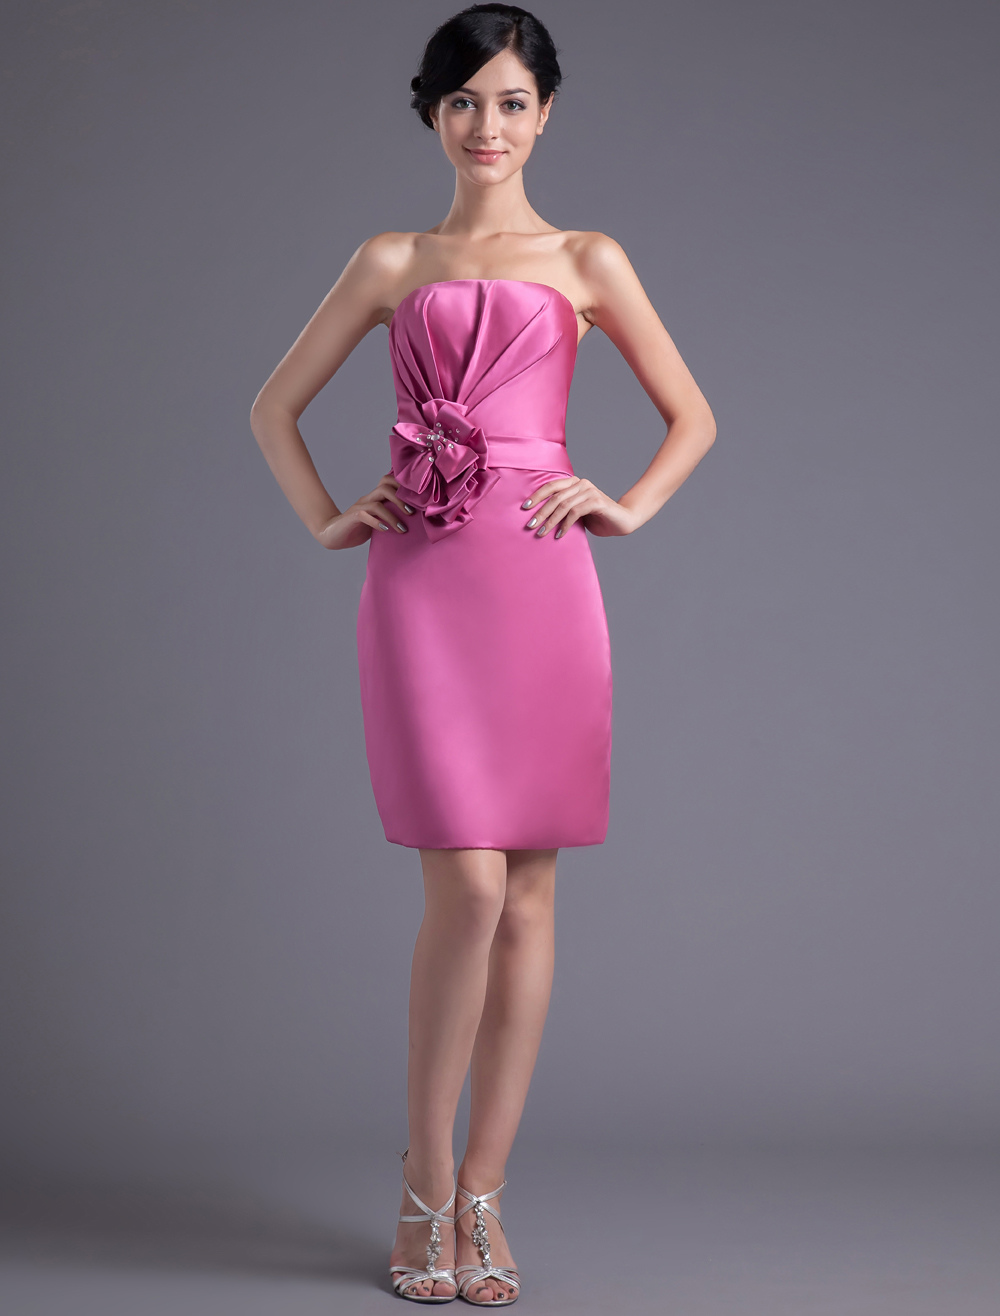 Sheath Fuchsia Satin Floral Strapless Wedding Bridesmaid Dress